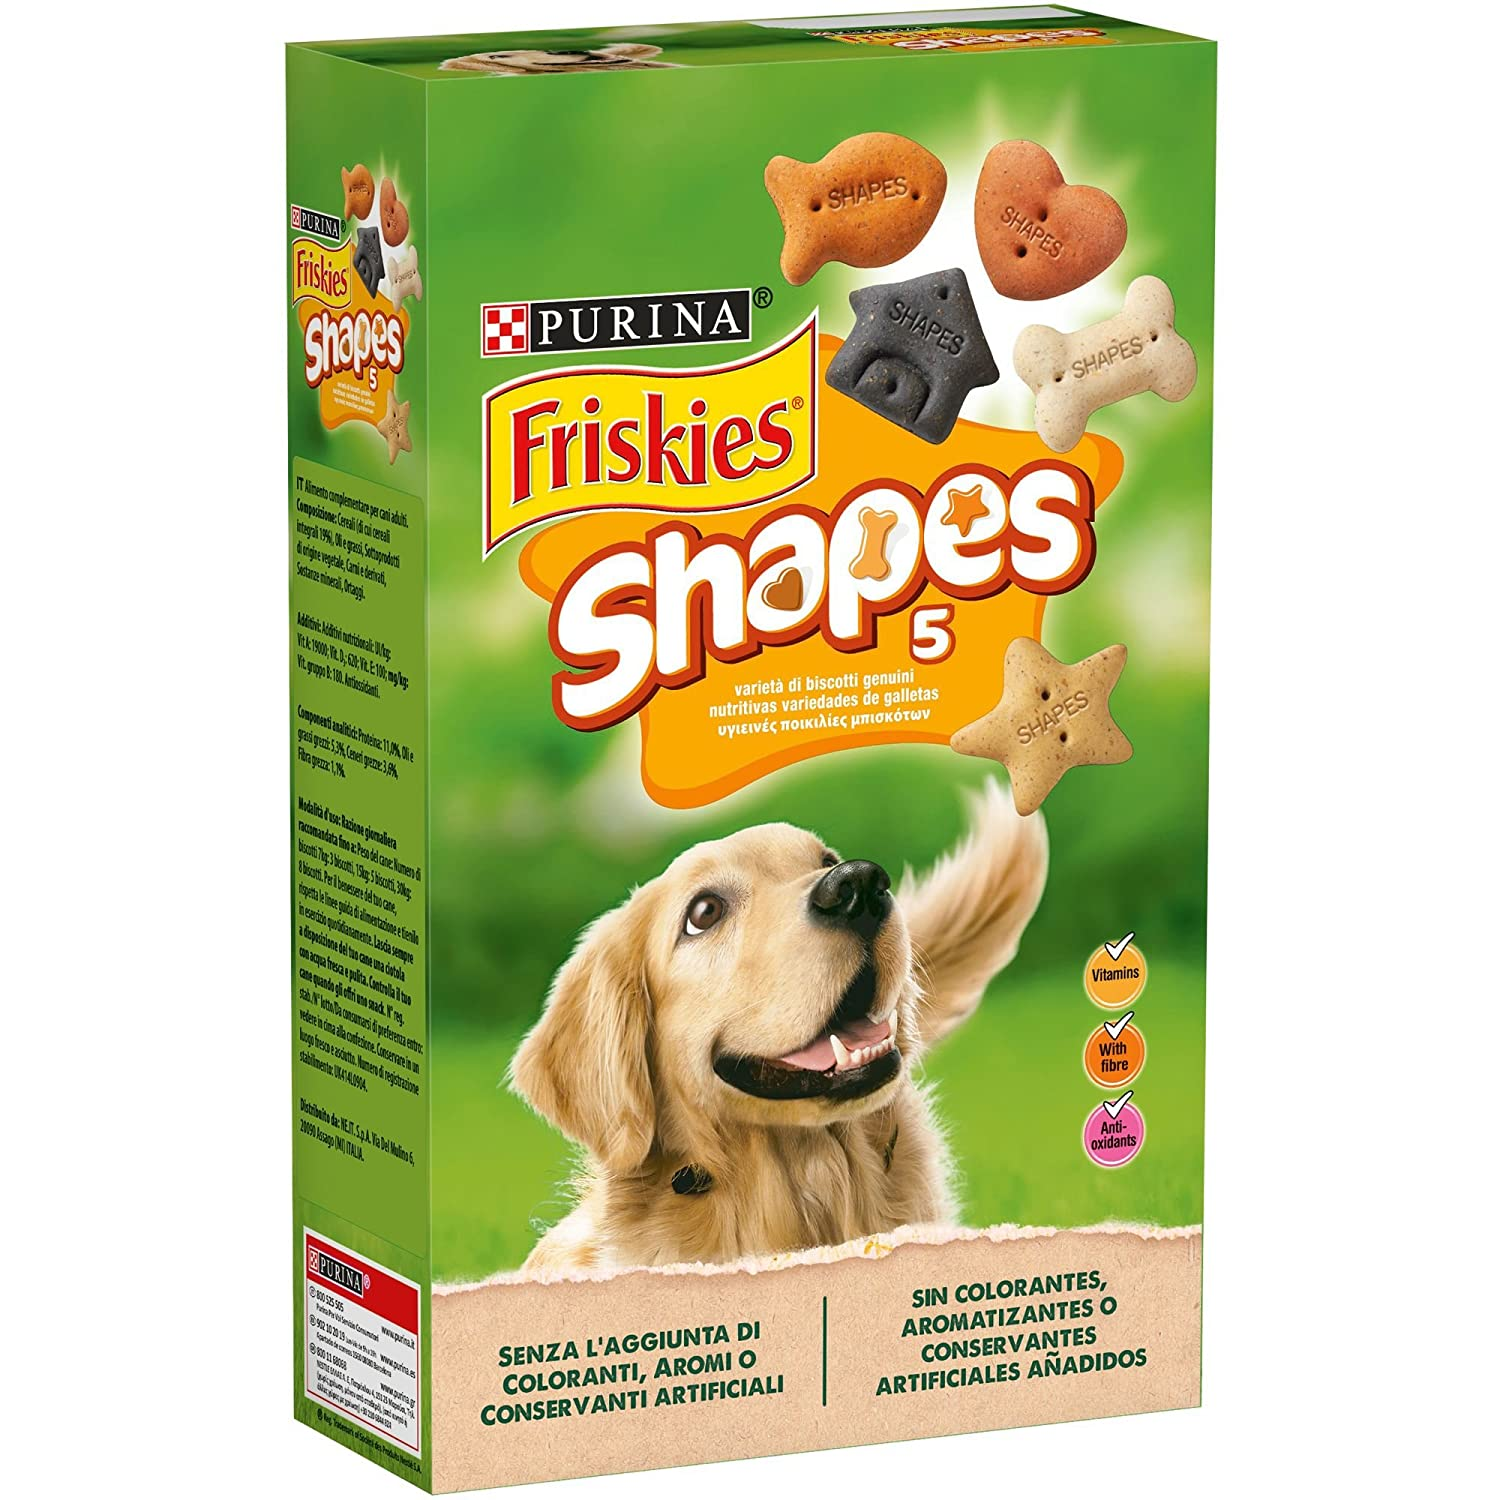 Purina Friskies Shapes galletas para perros 6 x 800 g: Amazon.es: Productos para mascotas